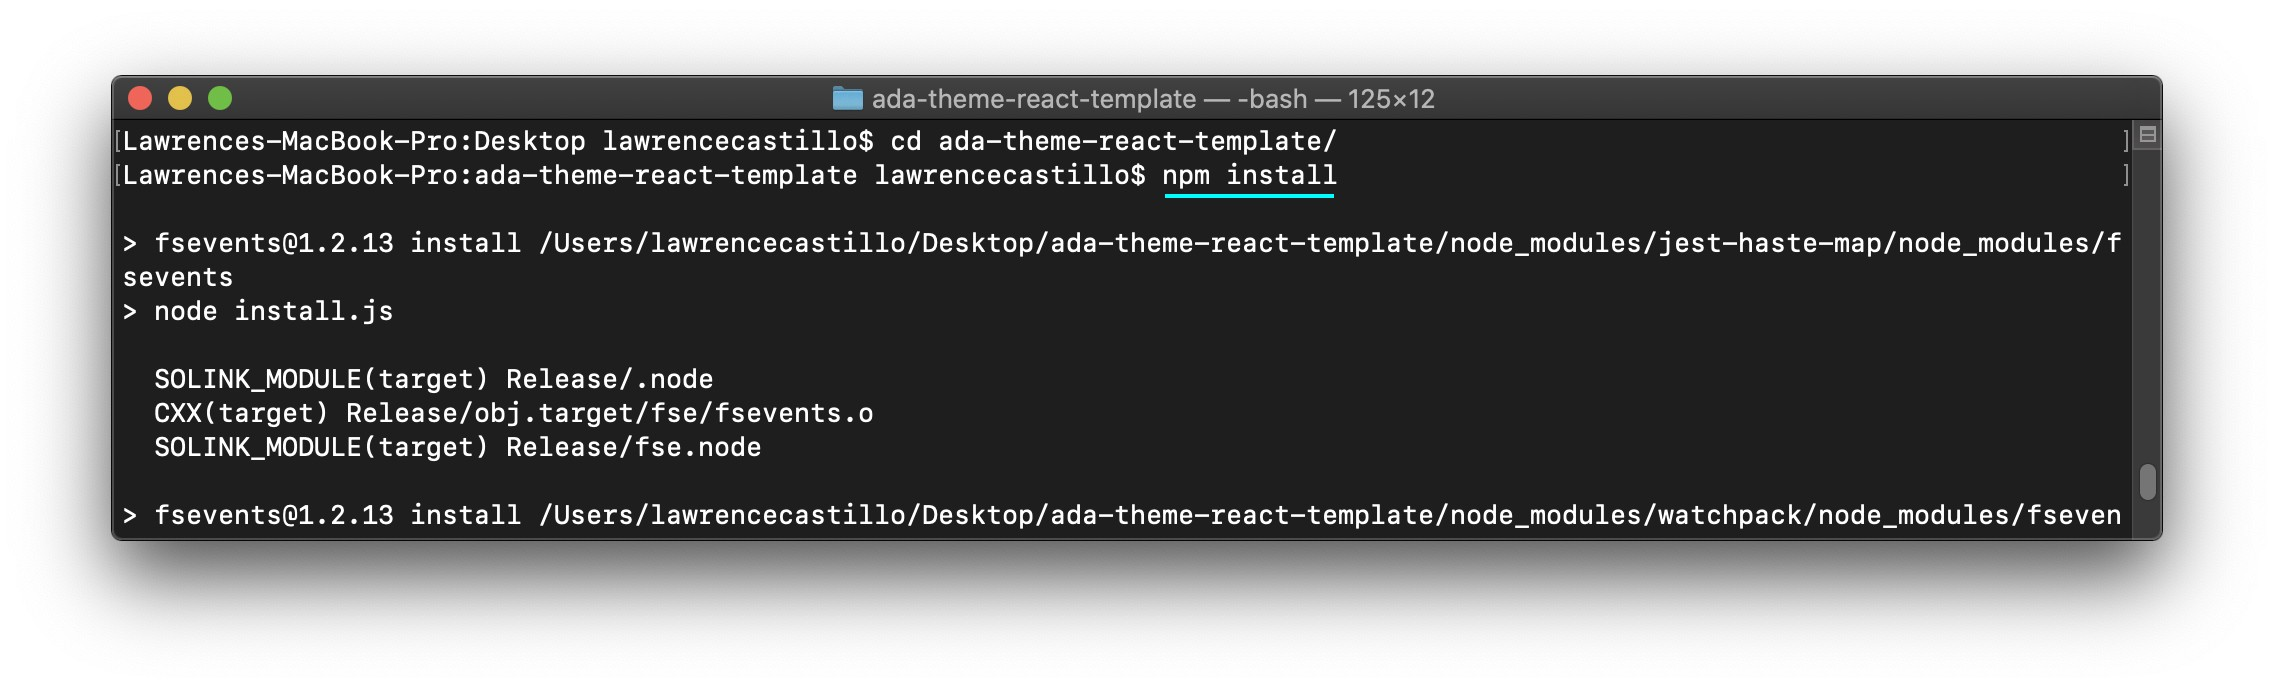 Screenshot showing installation of app dependencies using npm install in Mac Terminal.